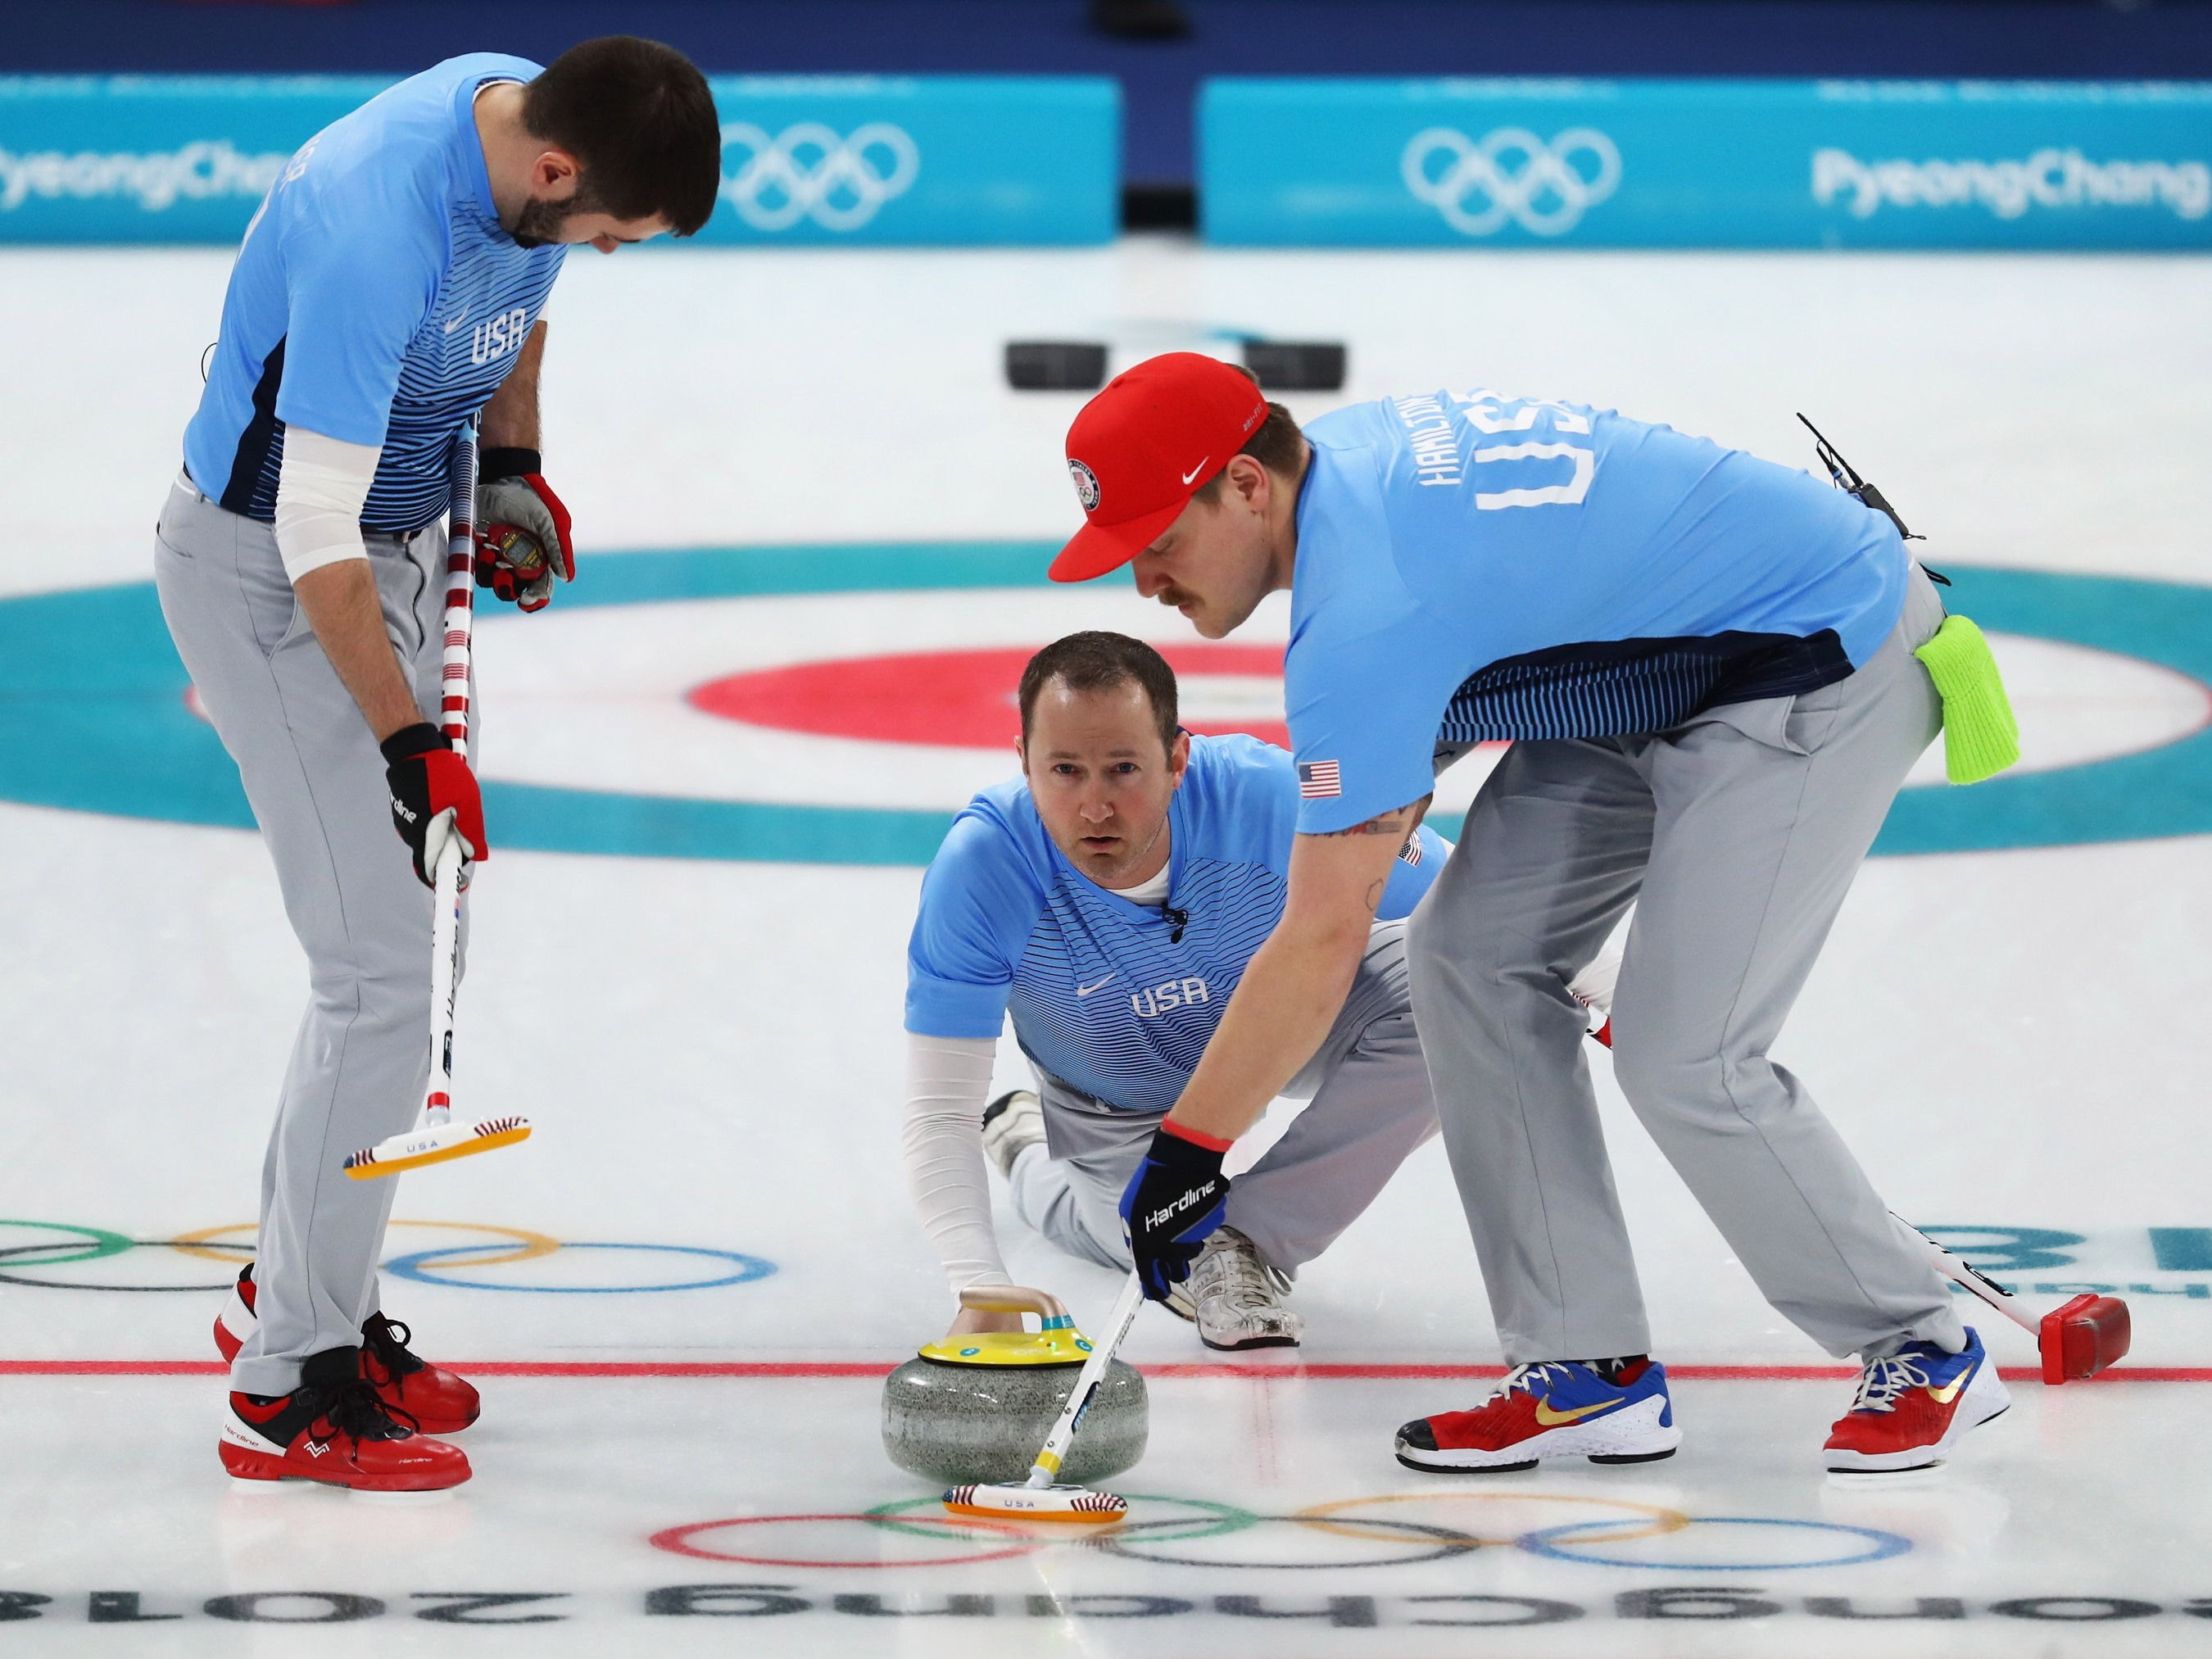 America Loves Curling Until It Forgets About For Four Years